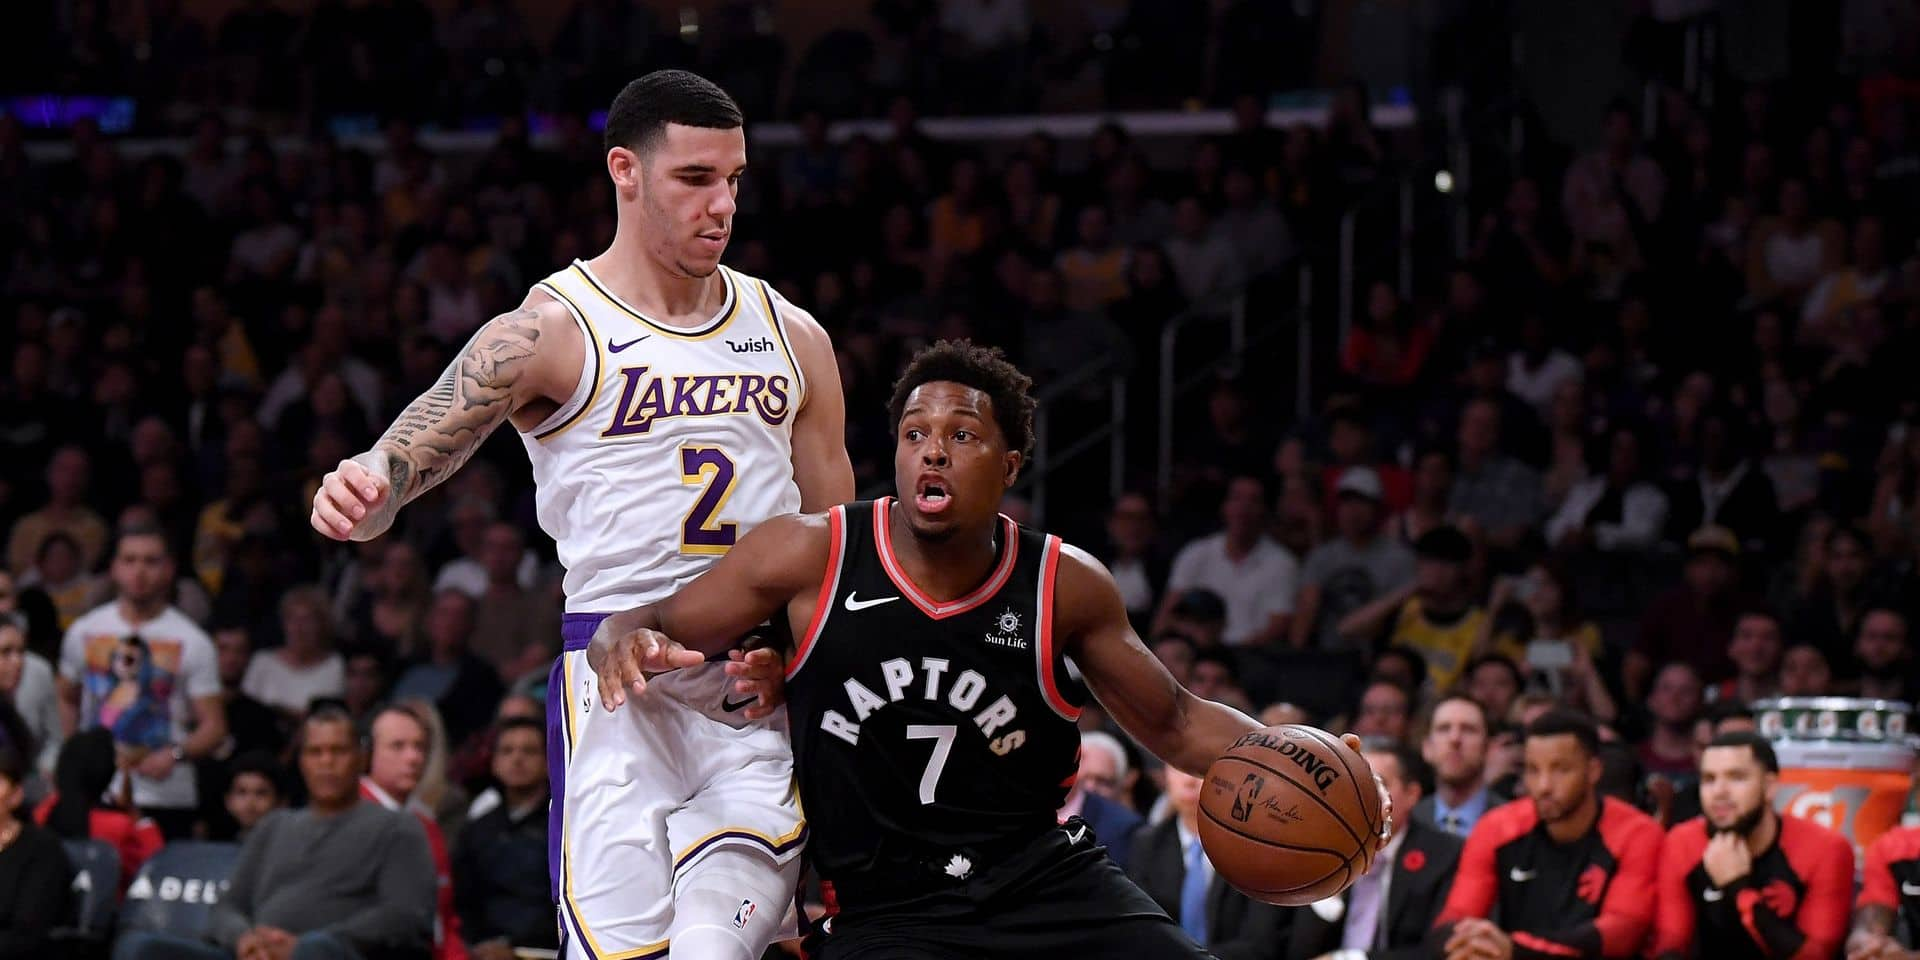 NBA: Les Lakers à court de solutions, Milwaukee taille patron